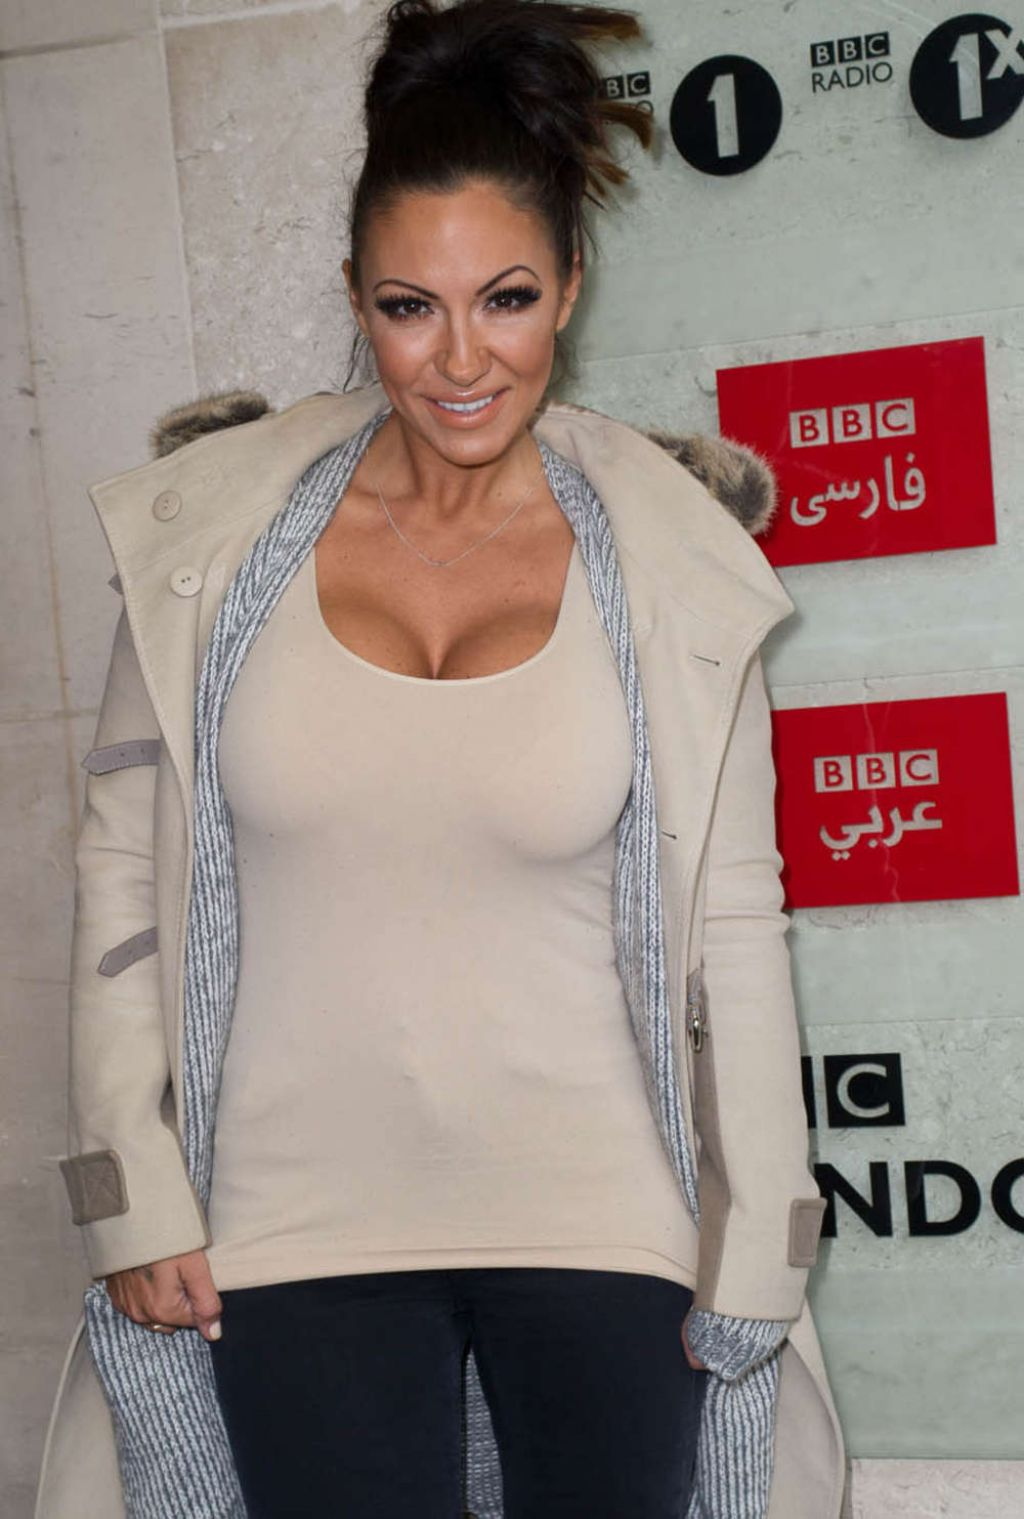 Jodie Marsh Leaving The Bbc Studios In London March 2015